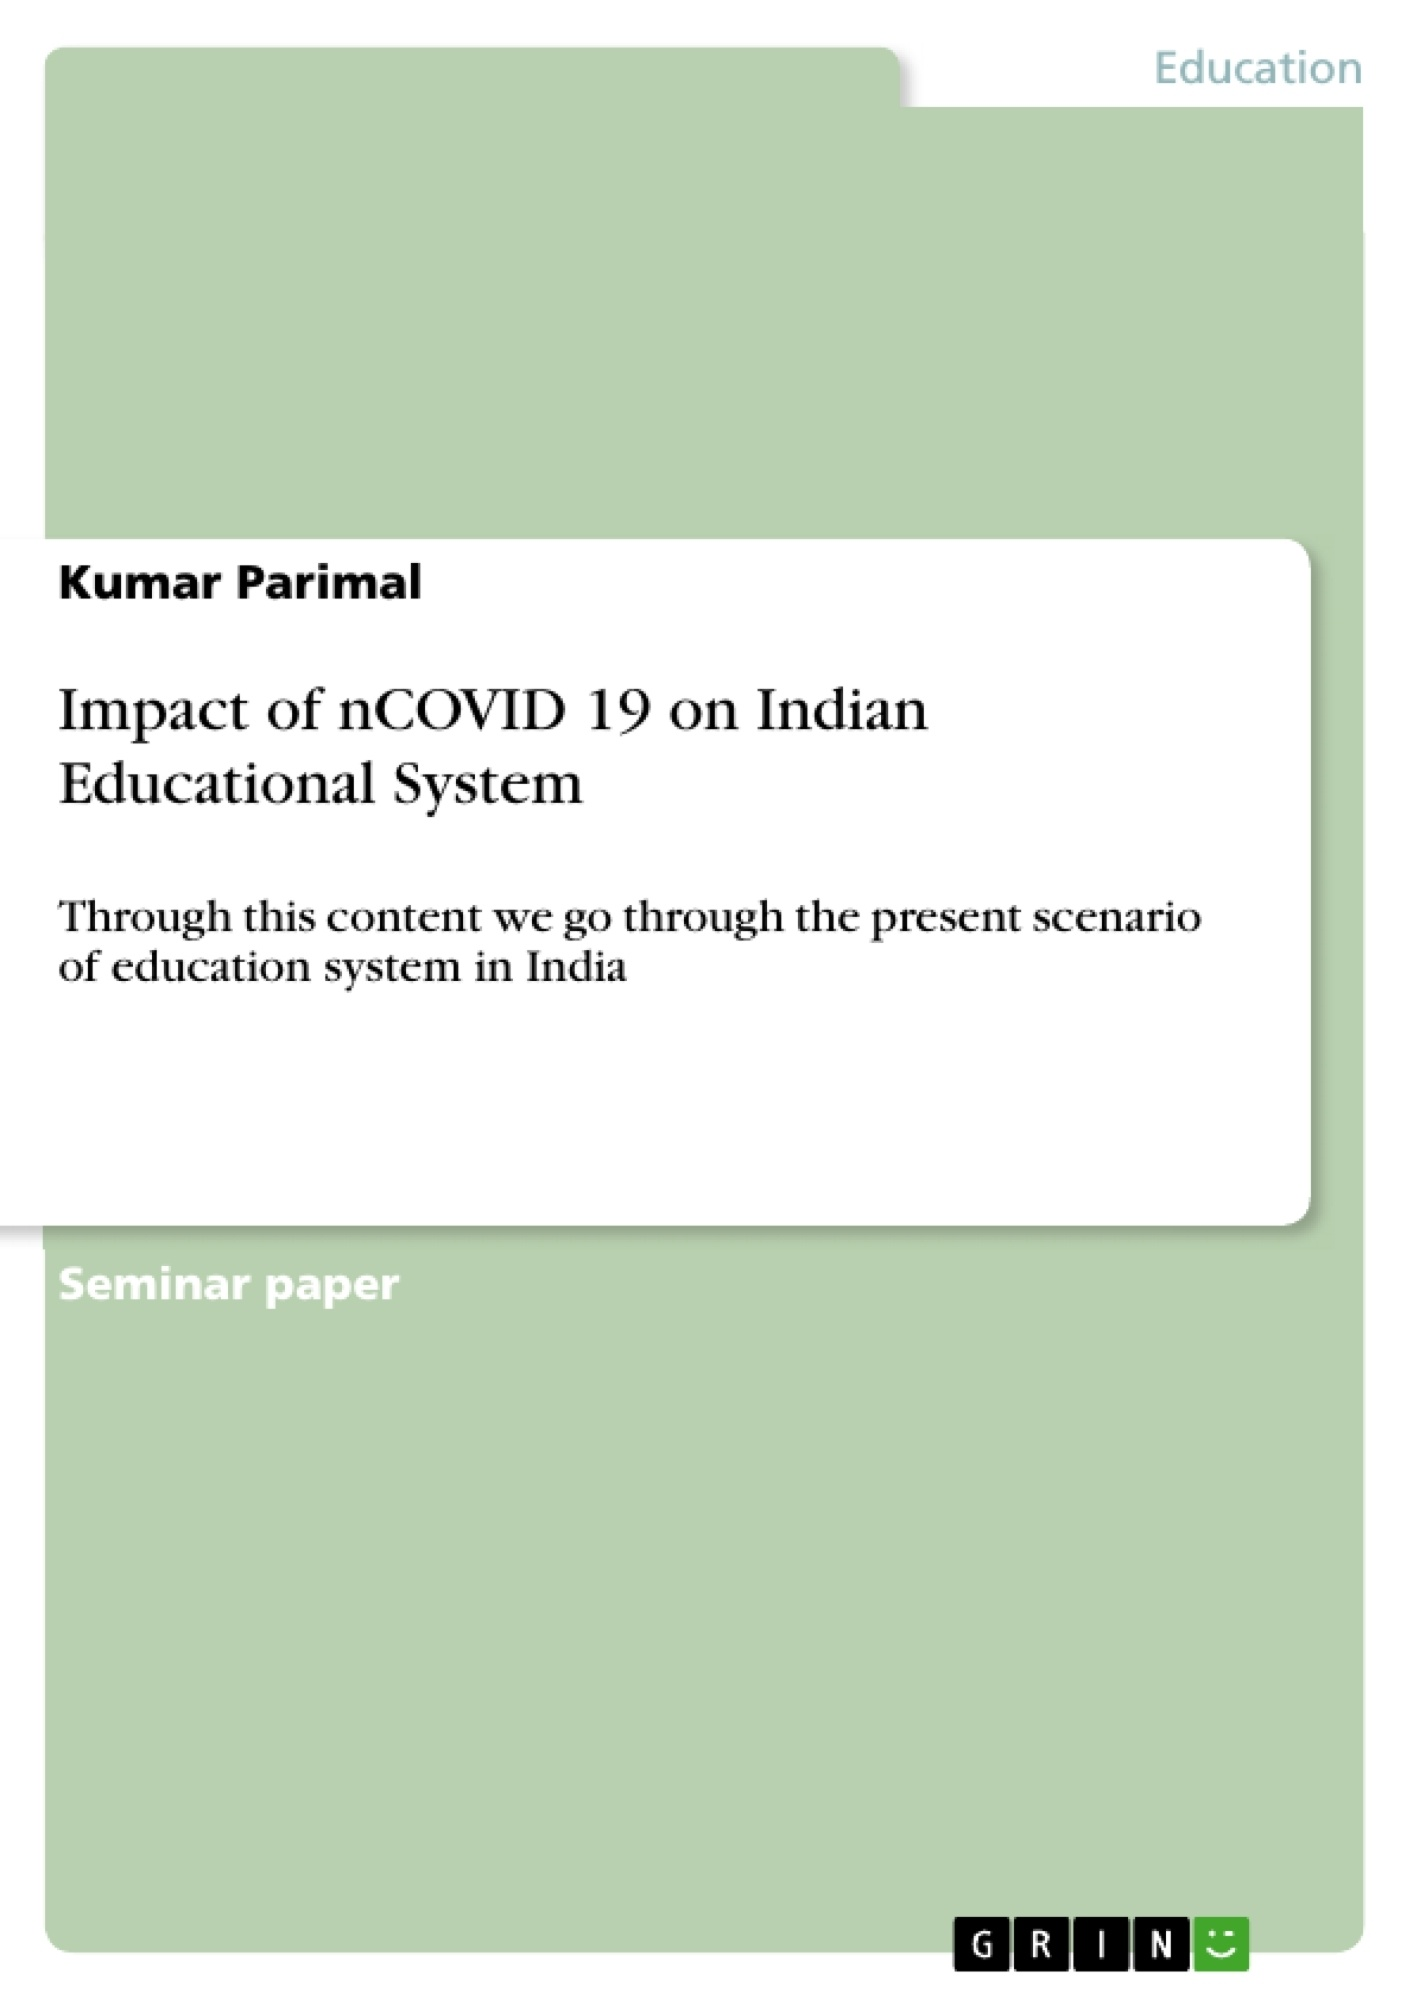 Title: Impact of nCOVID 19 on Indian Educational System